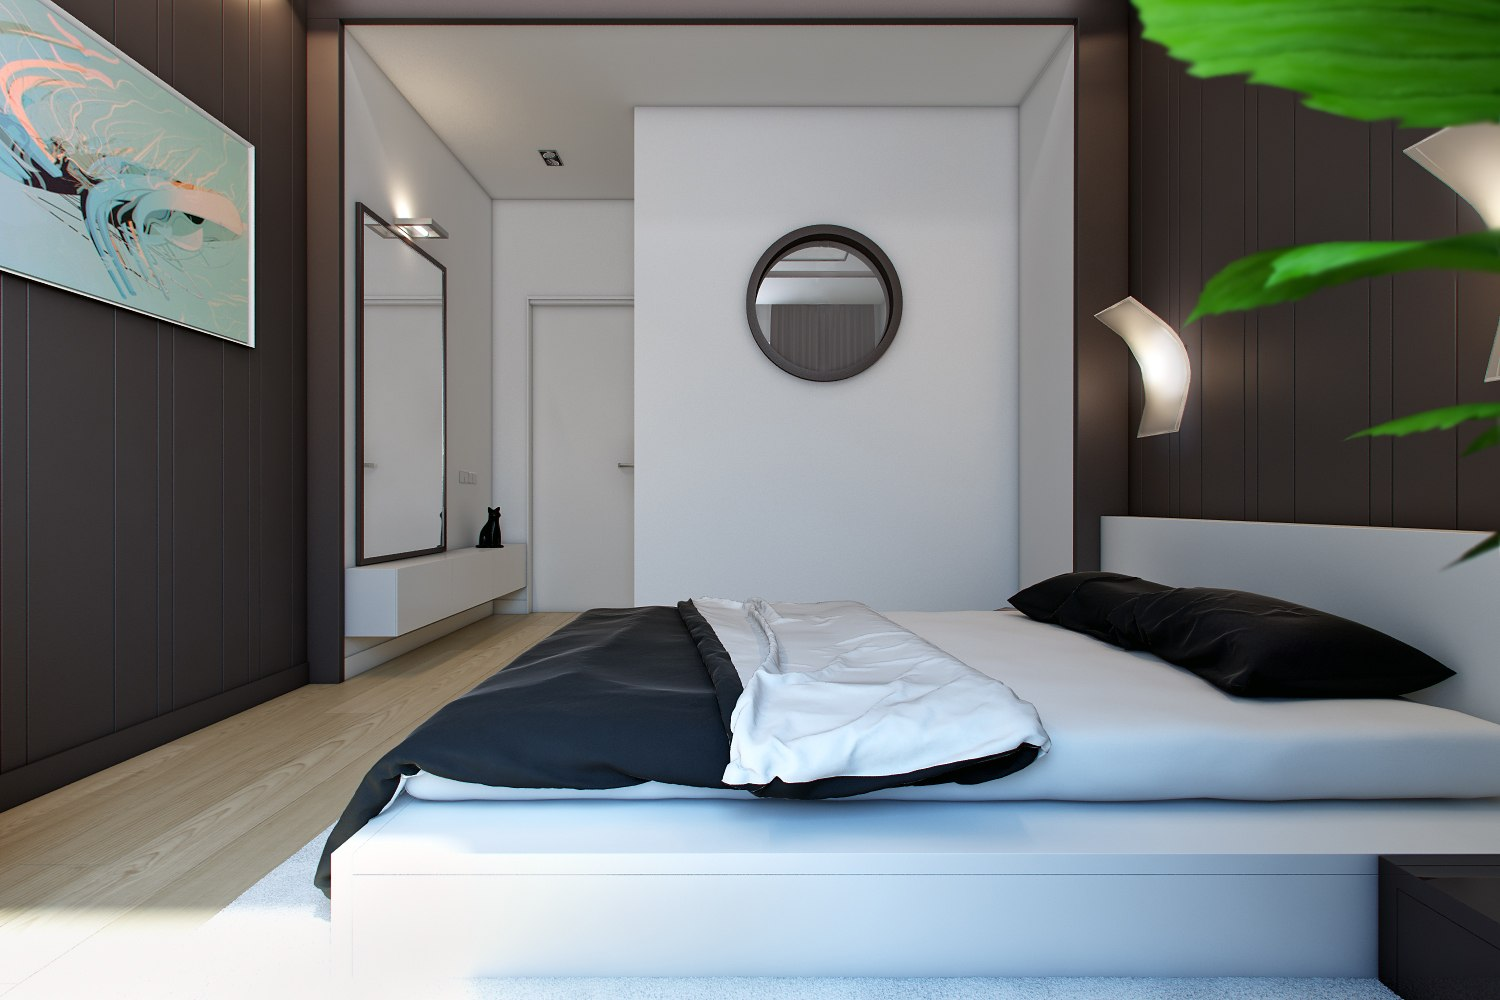 Interior of guest bedroom